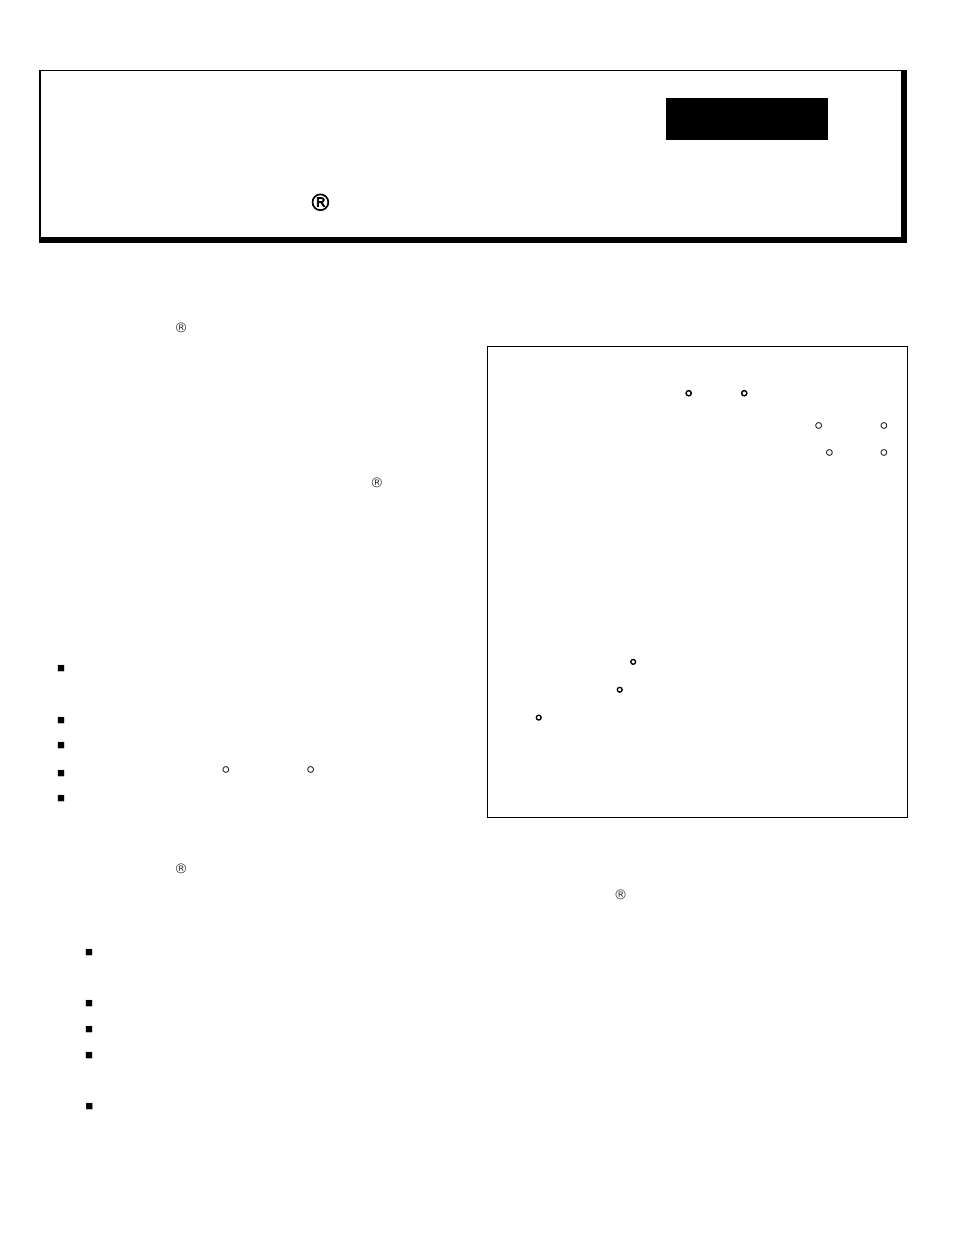 chemtronics circuitworks® boron nitride heat sink grease cw7250 userchemtronics circuitworks® boron nitride heat sink grease cw7250 user manual 2 pages